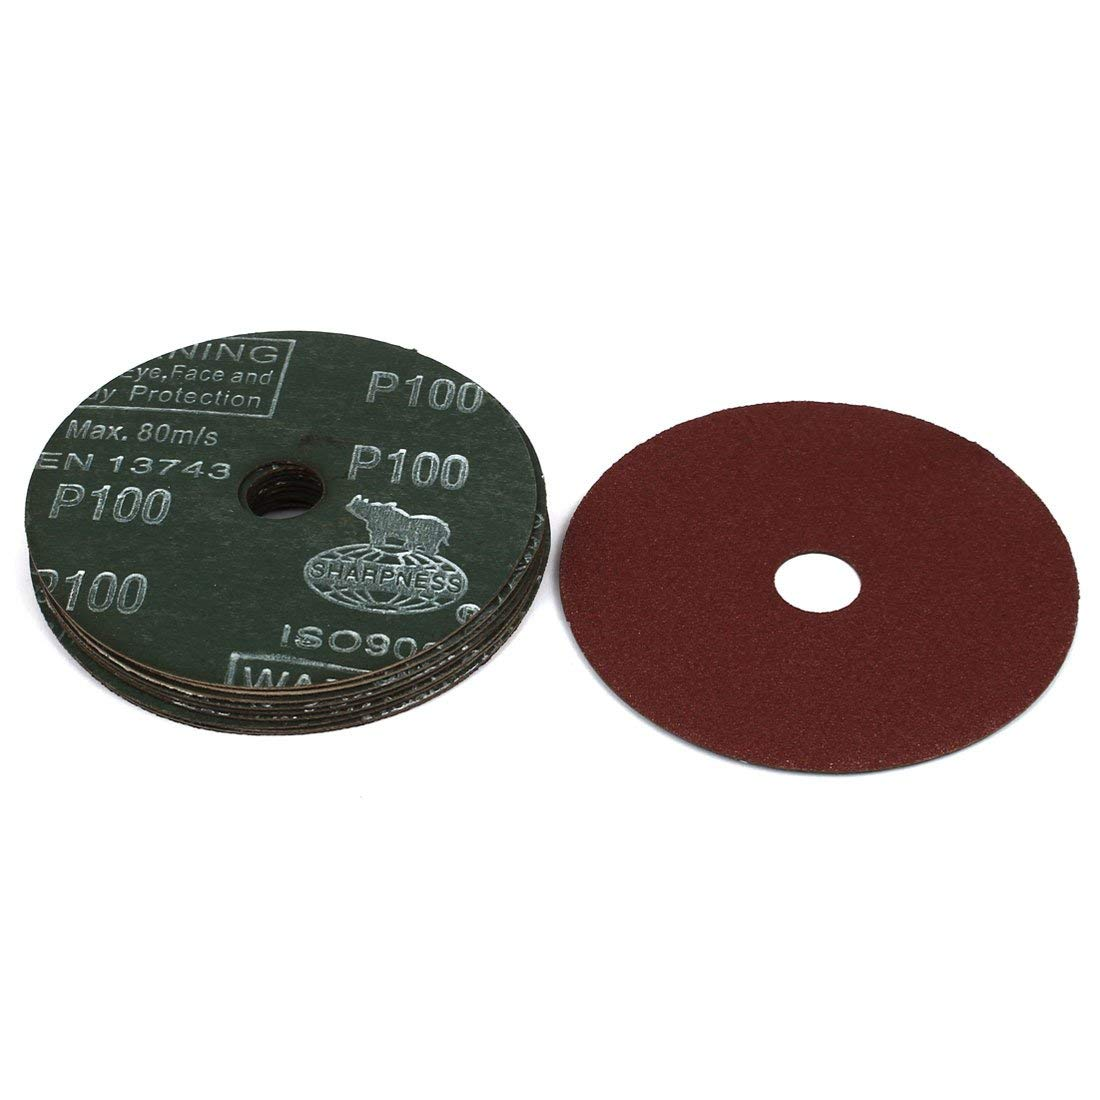 Norton 07660701646 Stick and Sand Abrasive Disc with Pressure-Sensitive Adhesive Attachment Roll of 50 Grit P180 Fine Aluminum Oxide 5 Diameter 5 Holes